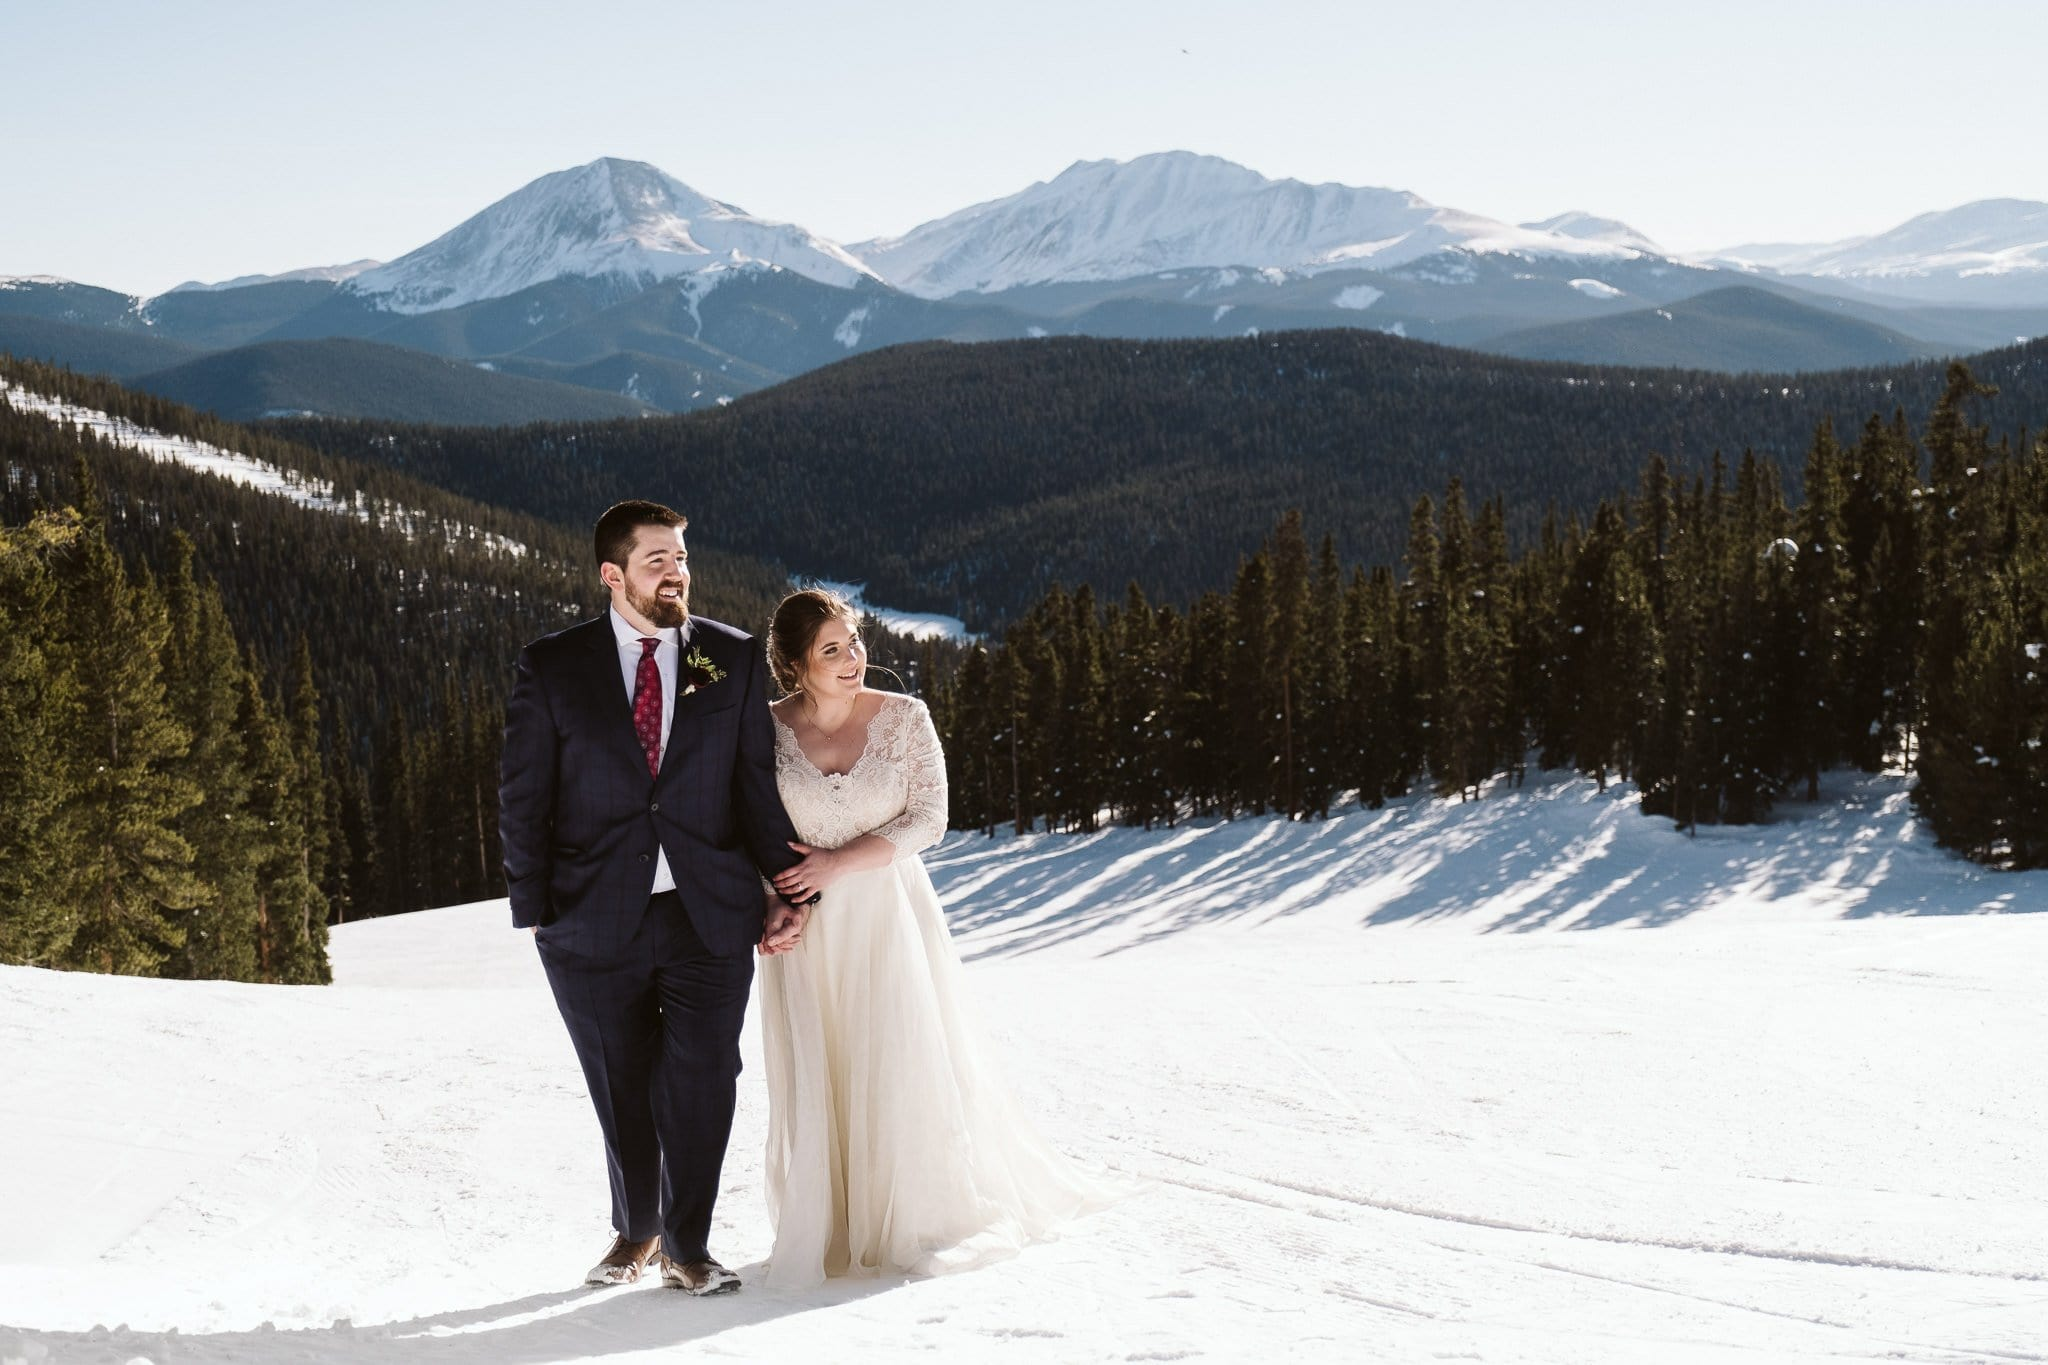 Bride and groom on the ski slopes at Keystone in Colroado.